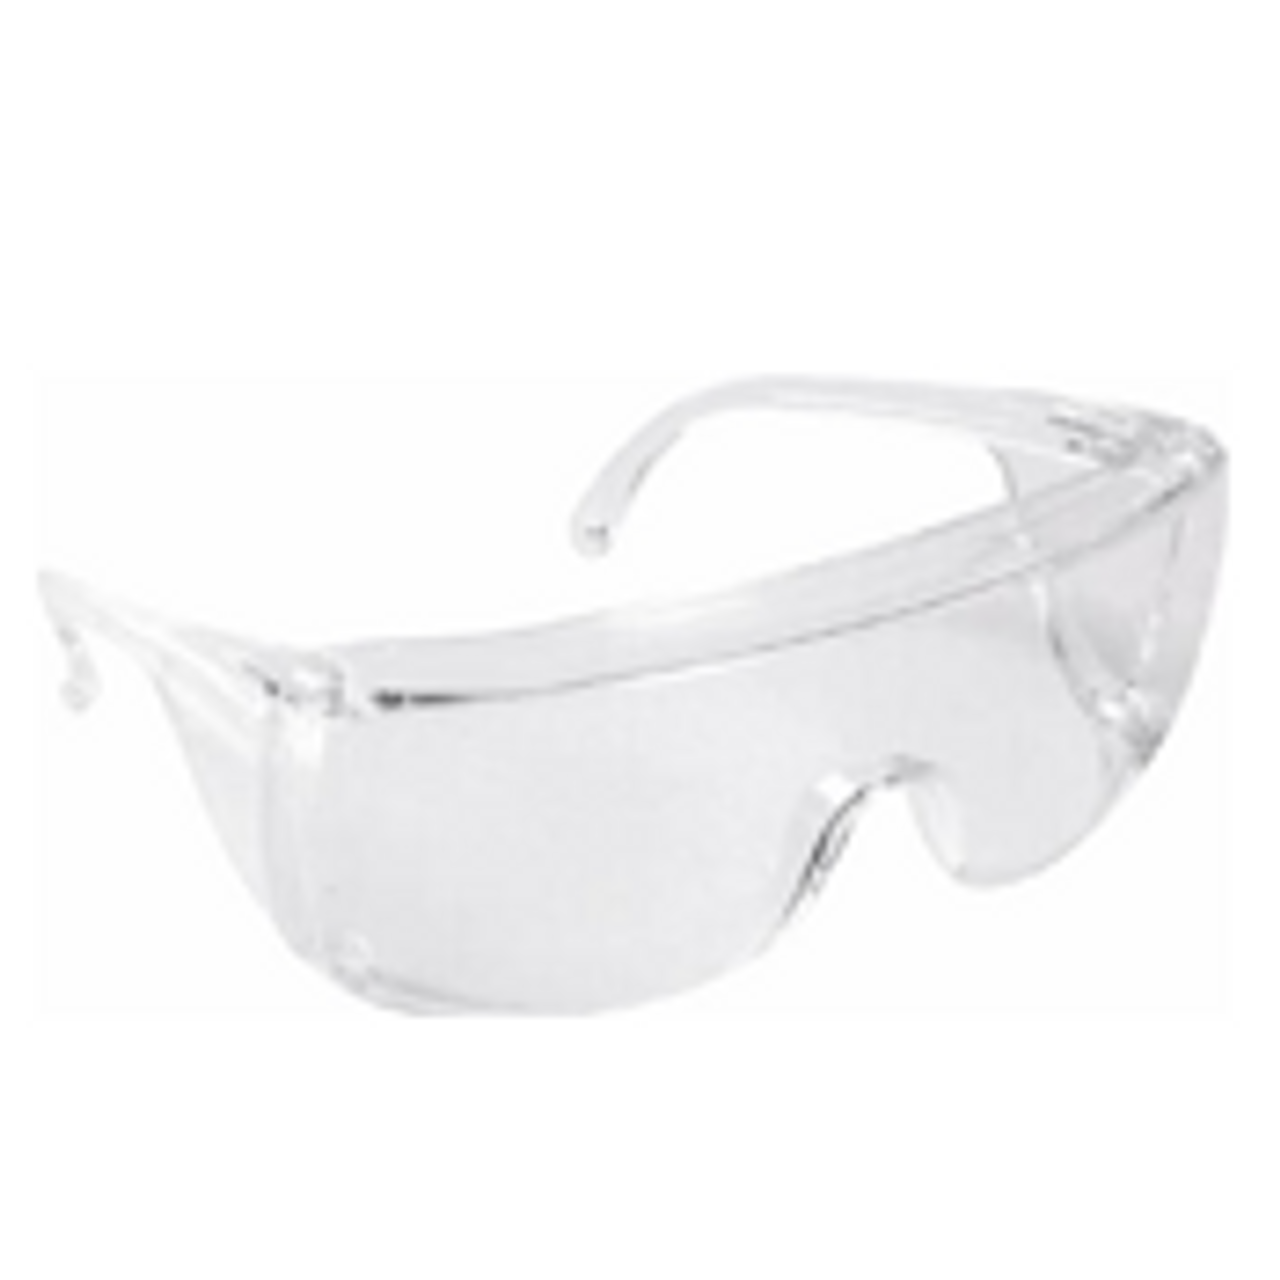 Protective Glasses & Face Shields